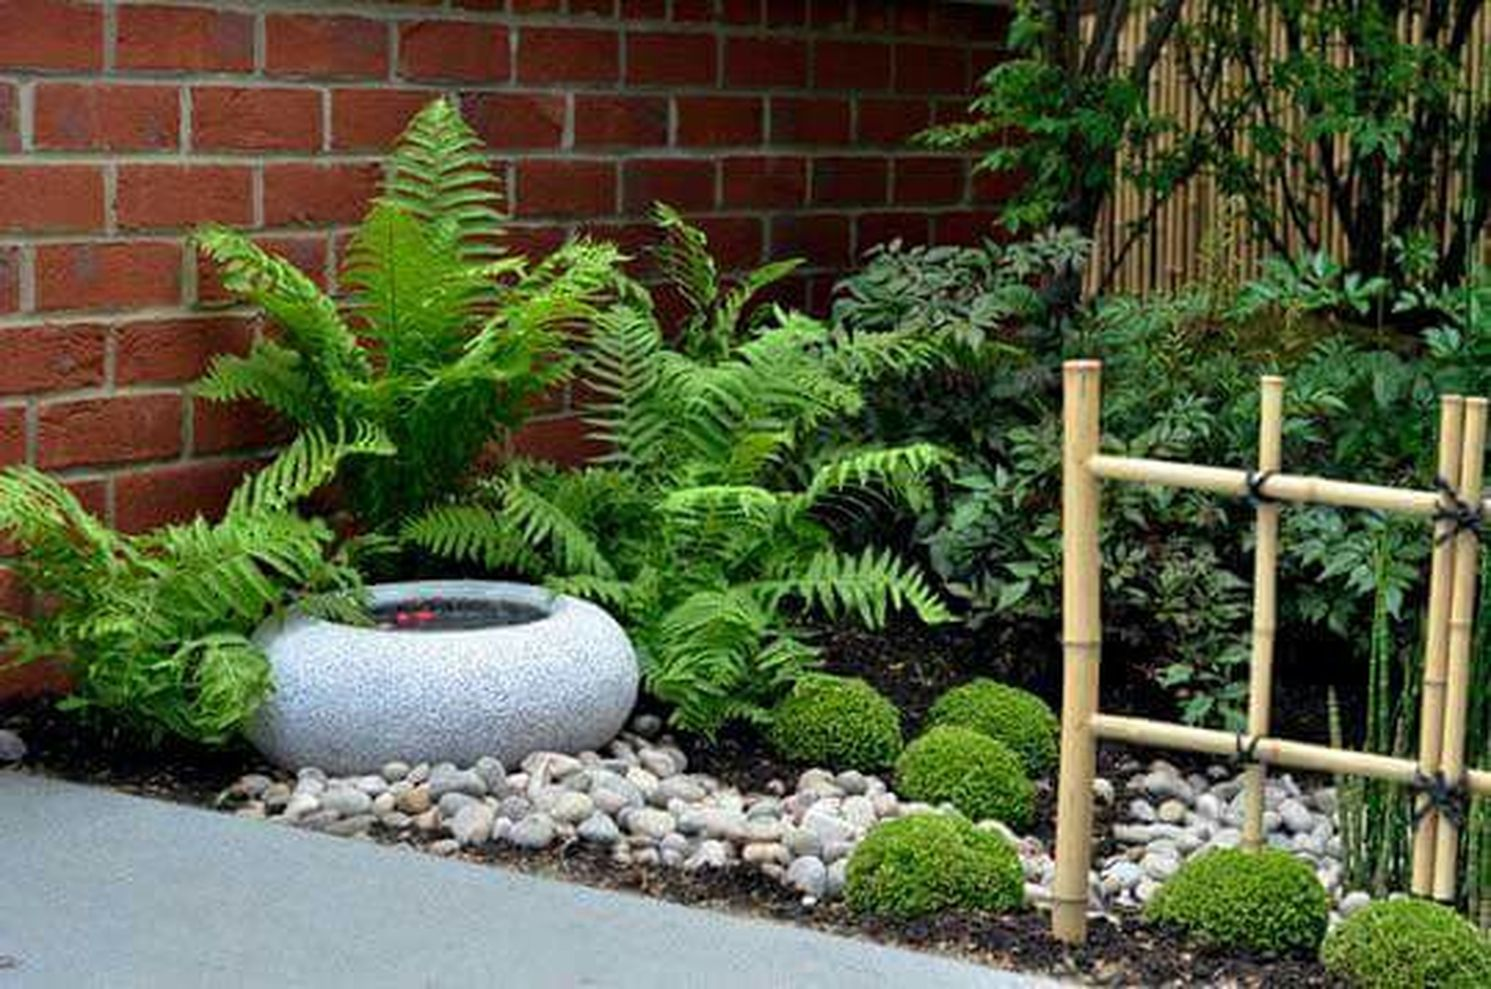 Inspiring small japanese garden design ideas 01 round decor for Japan home inspirational design ideas